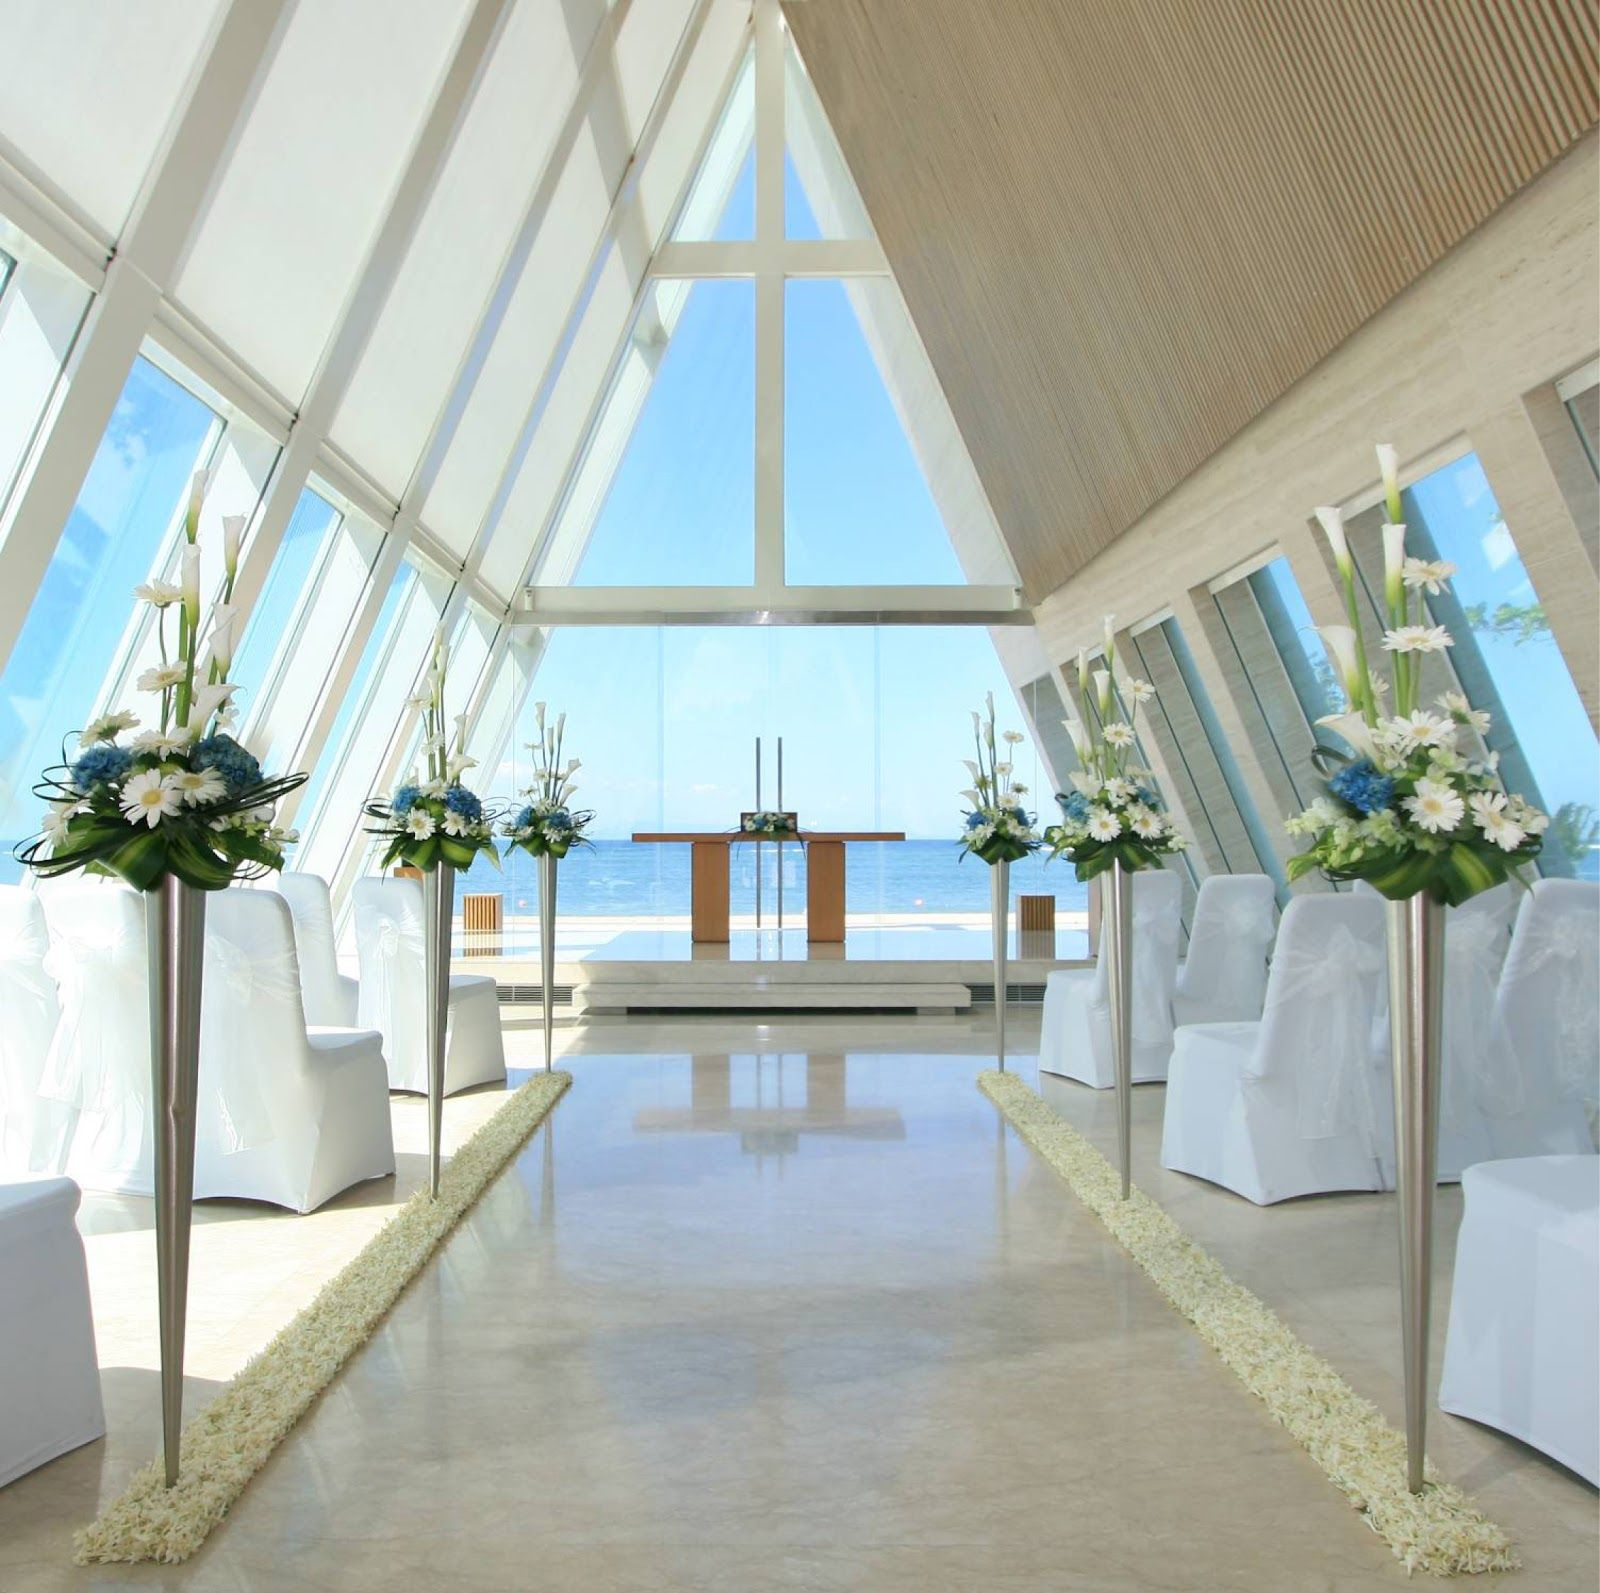 Wedding Chapel Decoration Ideas: Bali Infinity Chapel-When We Renew Our Vows...this Is